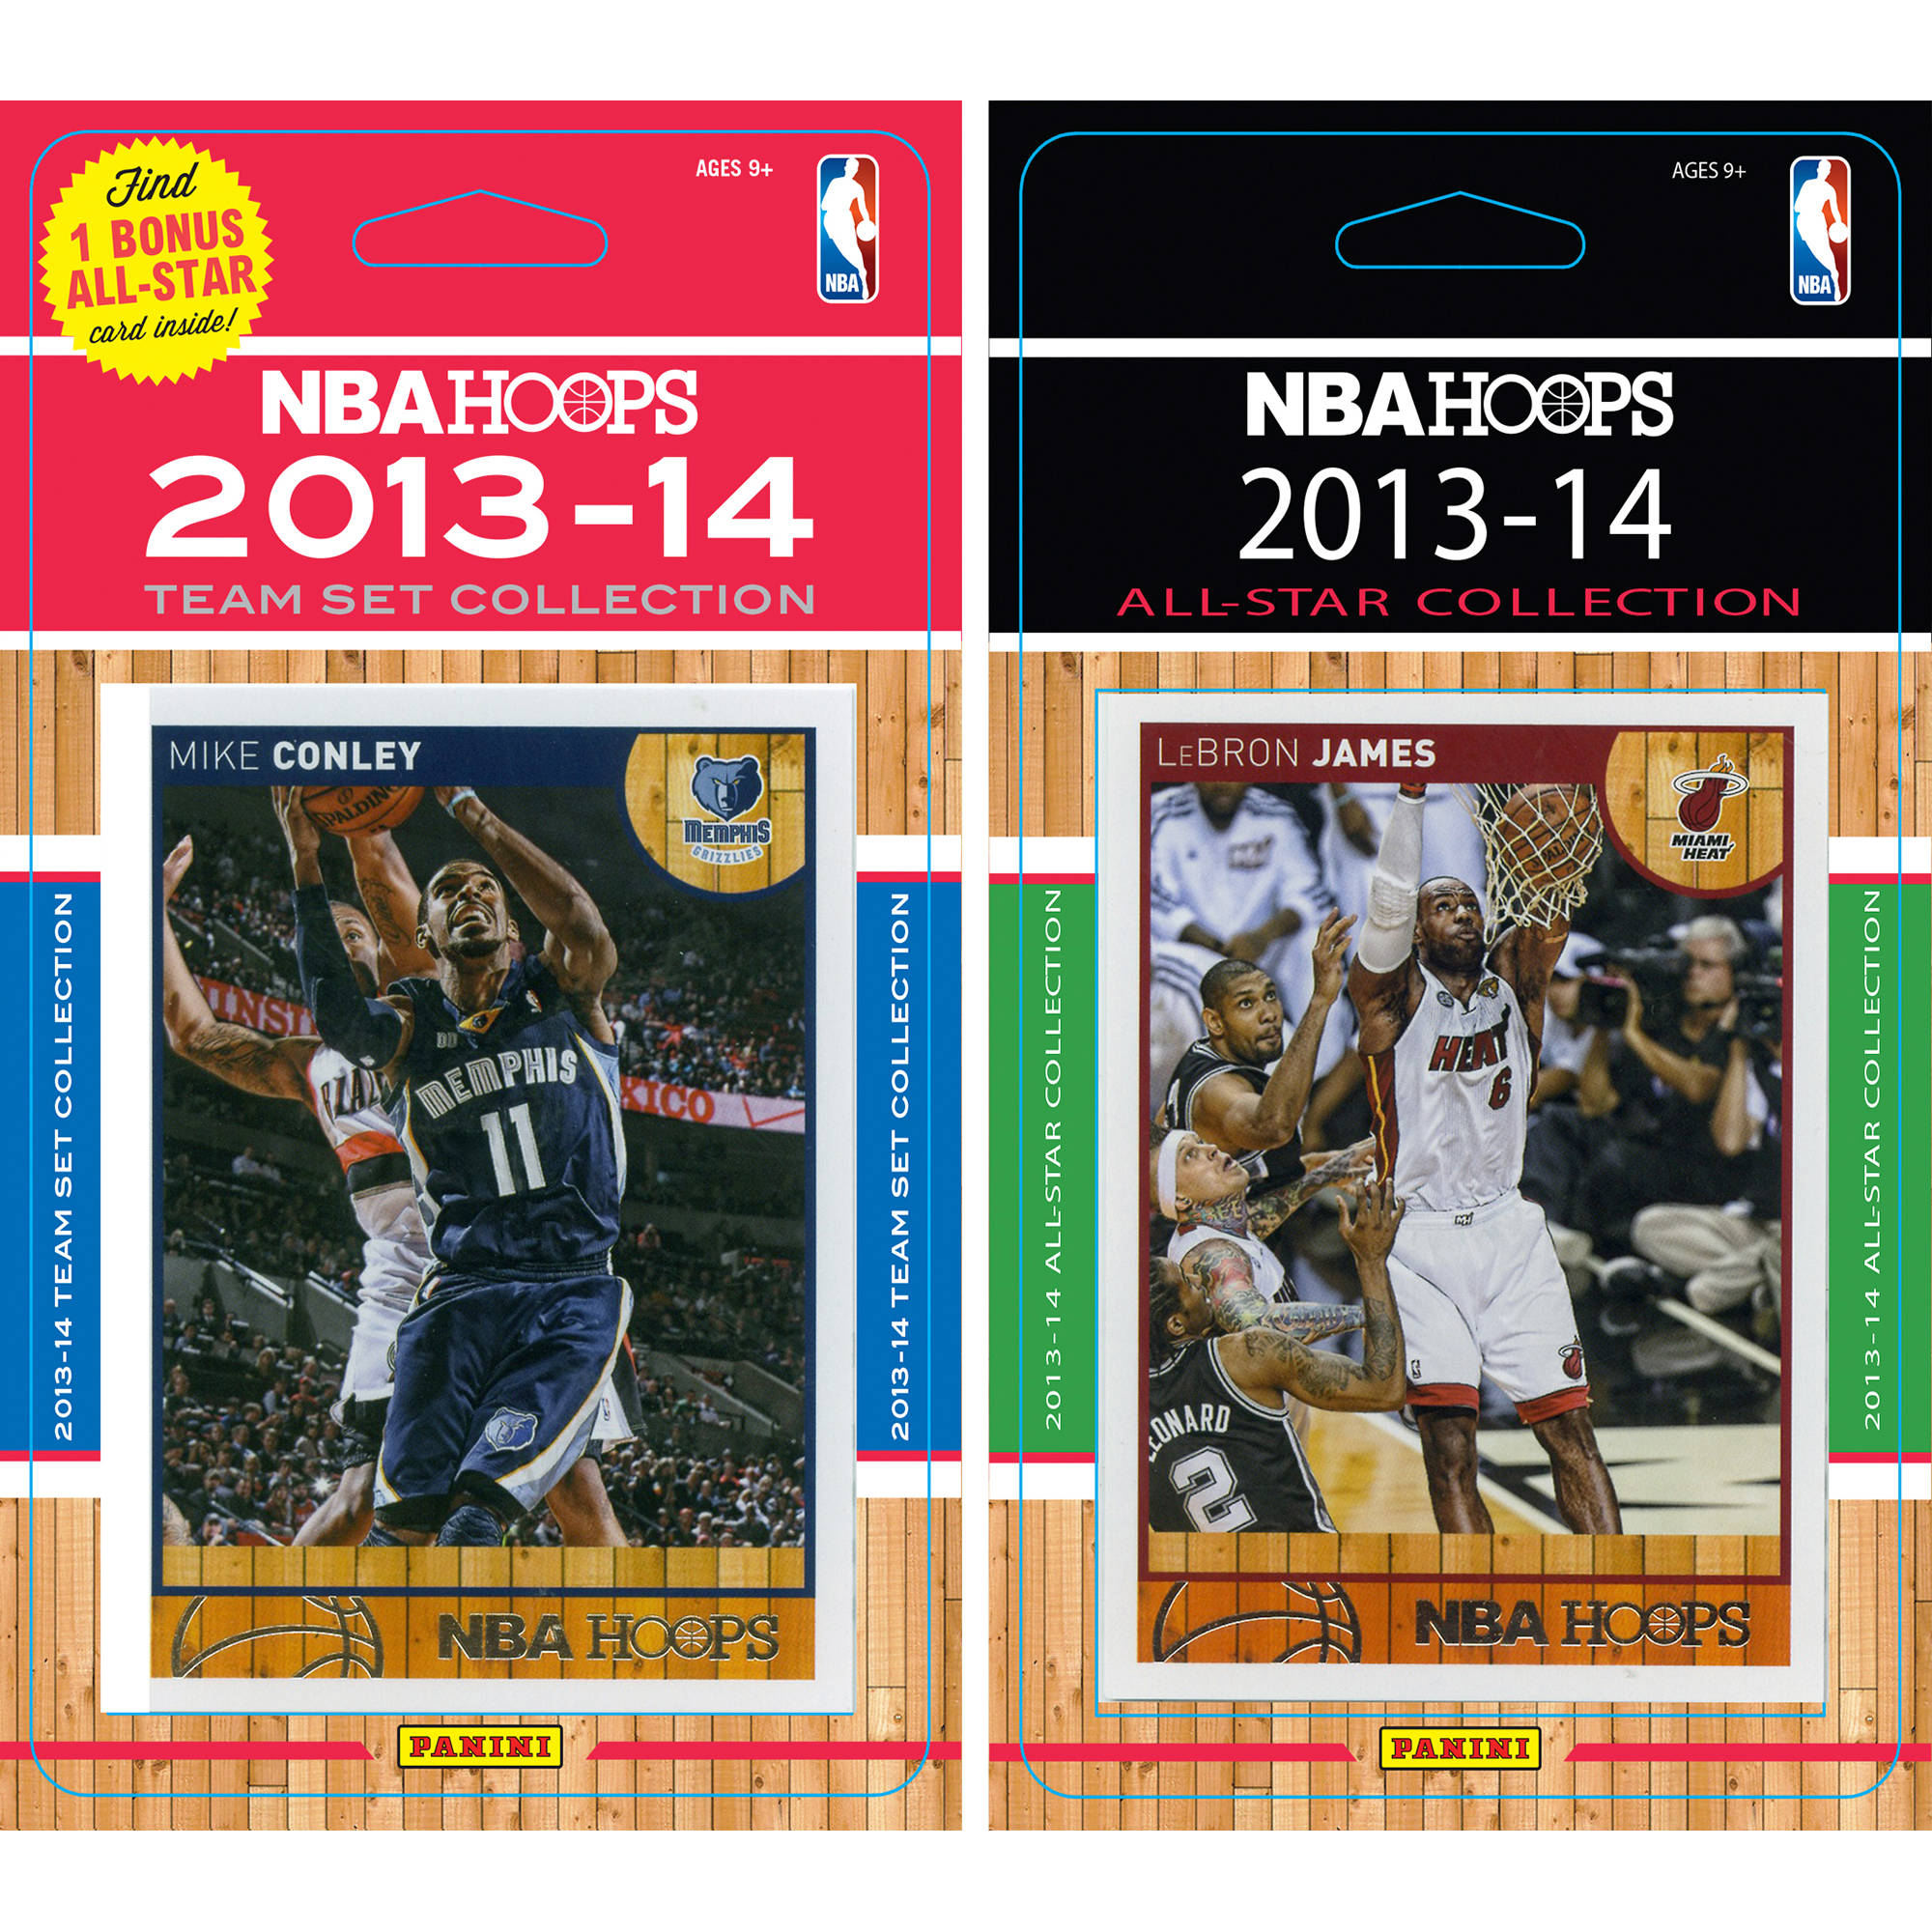 C&I Collectables NBA Memphis Grizzlies Licensed 2013-14 Hoops Team Set Plus 2013-24 Hoops All-Star Set